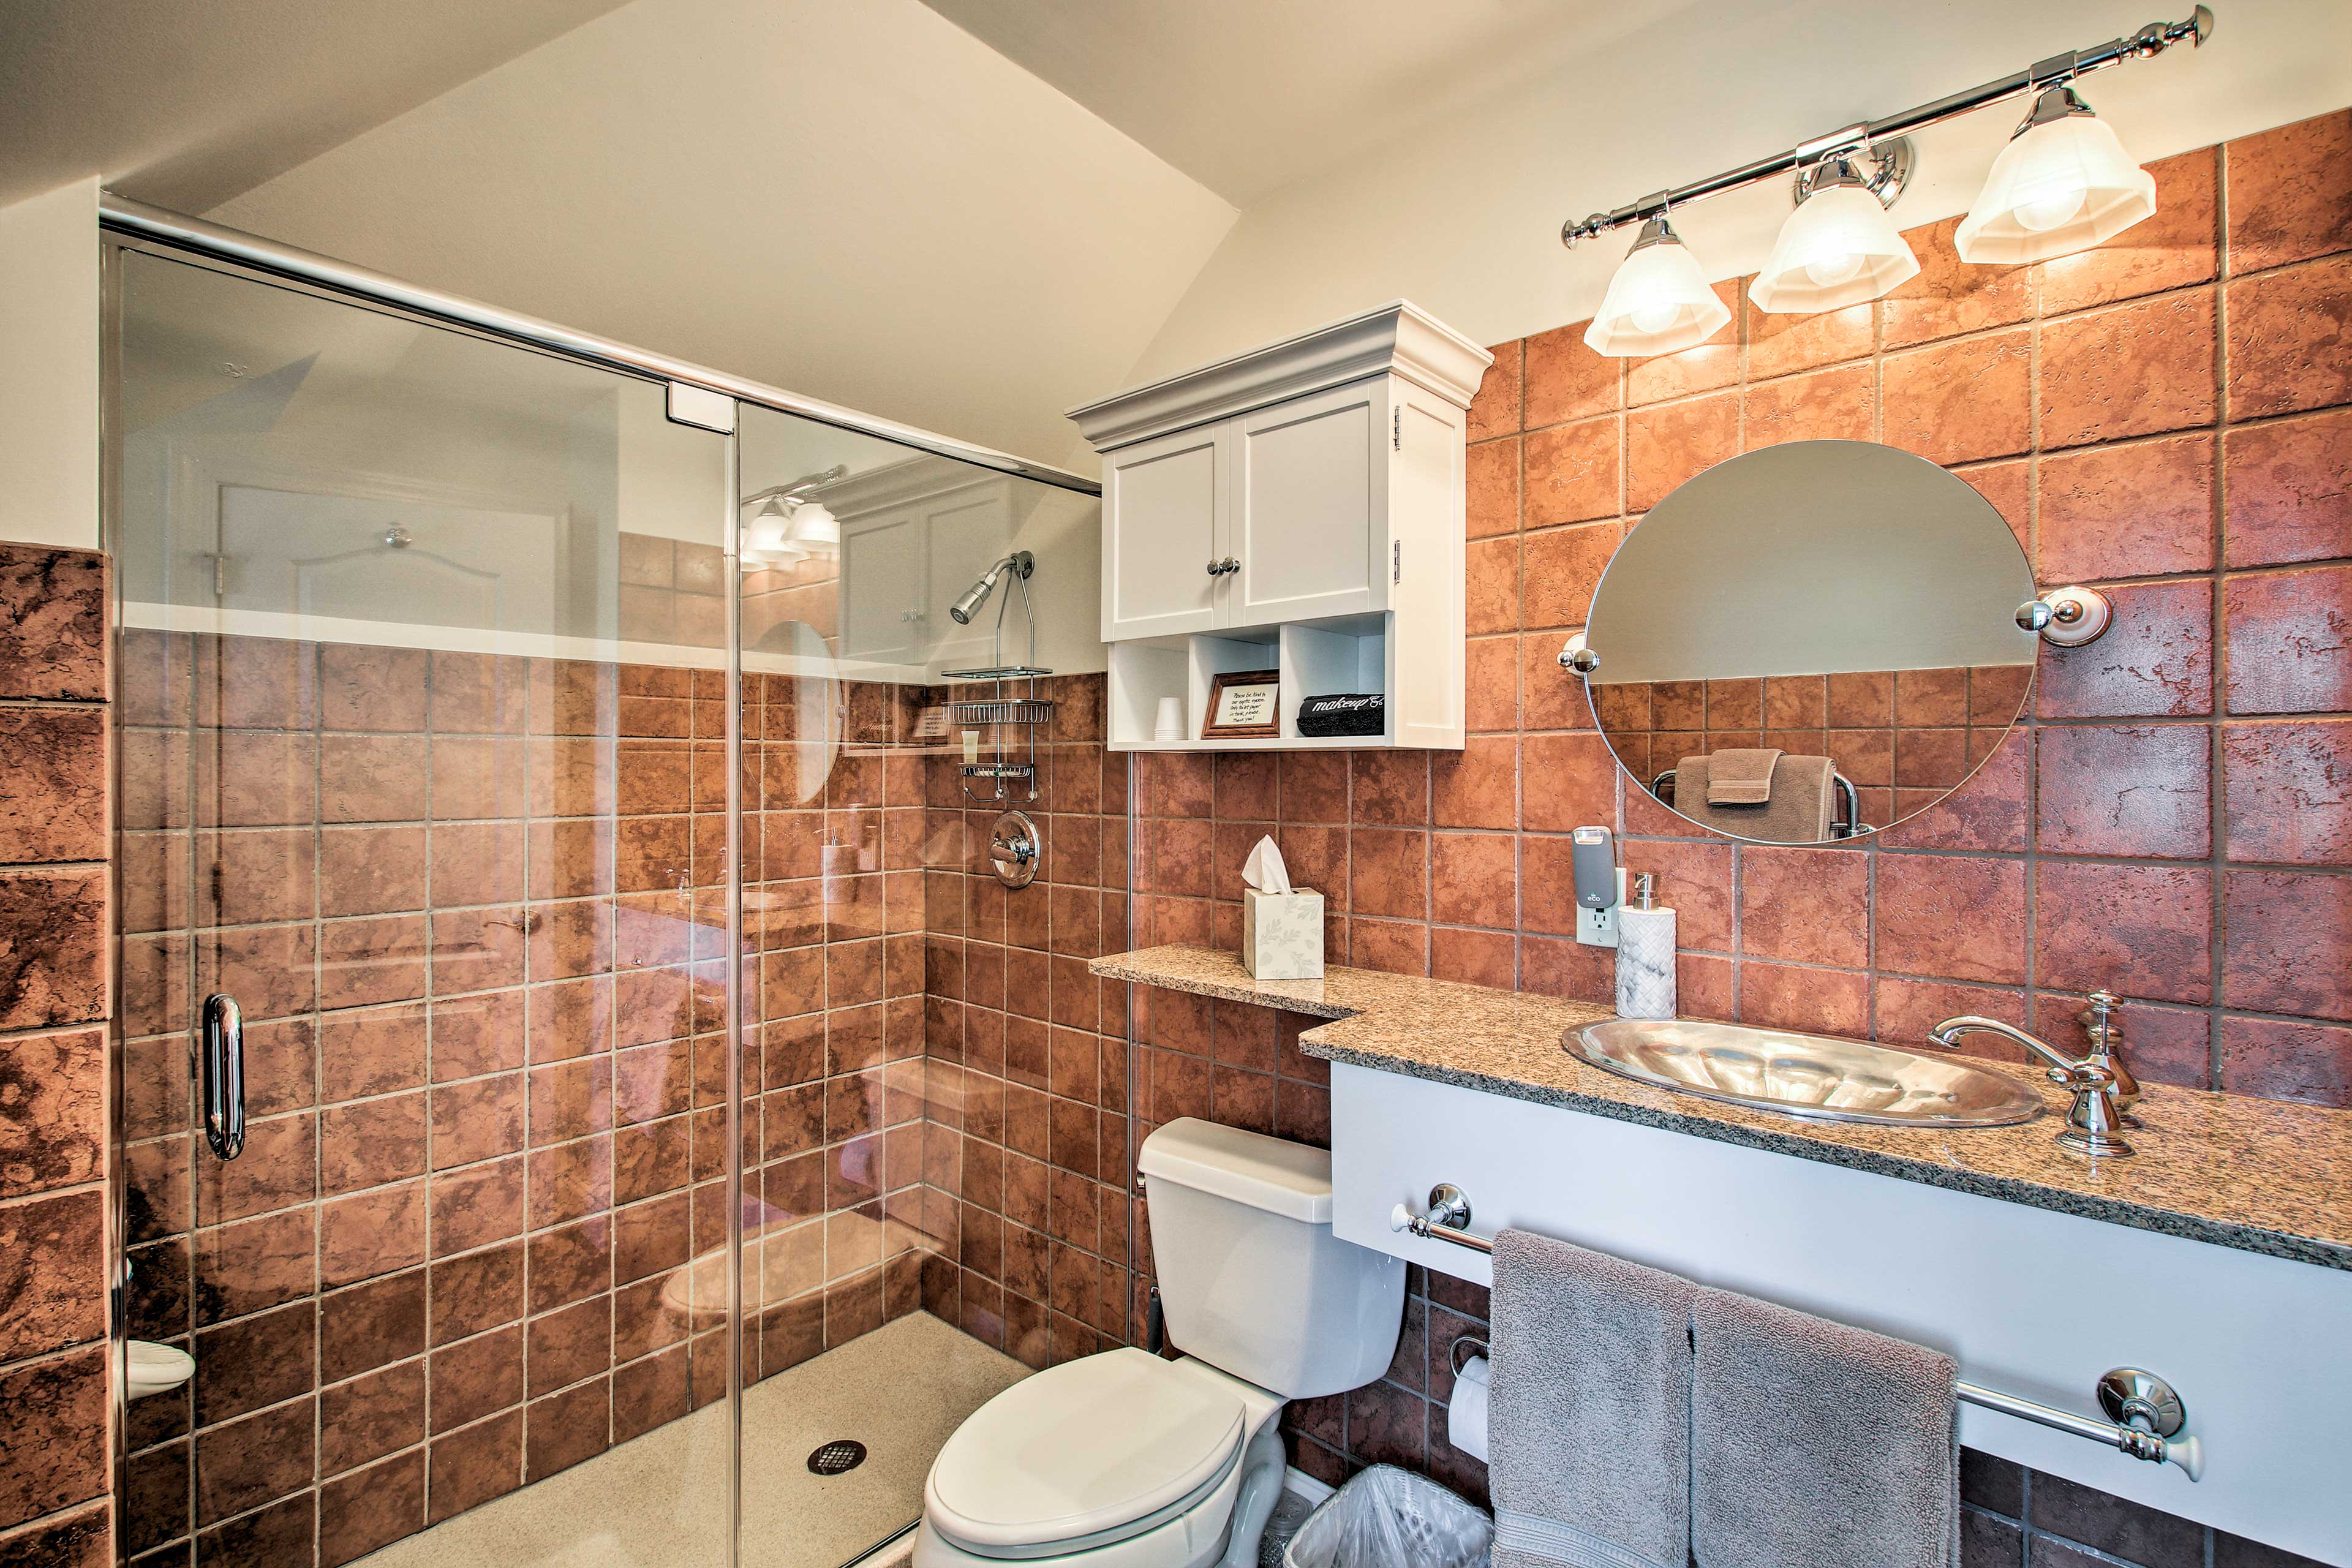 Rinse off in this luxury walk-in shower before bedtime.